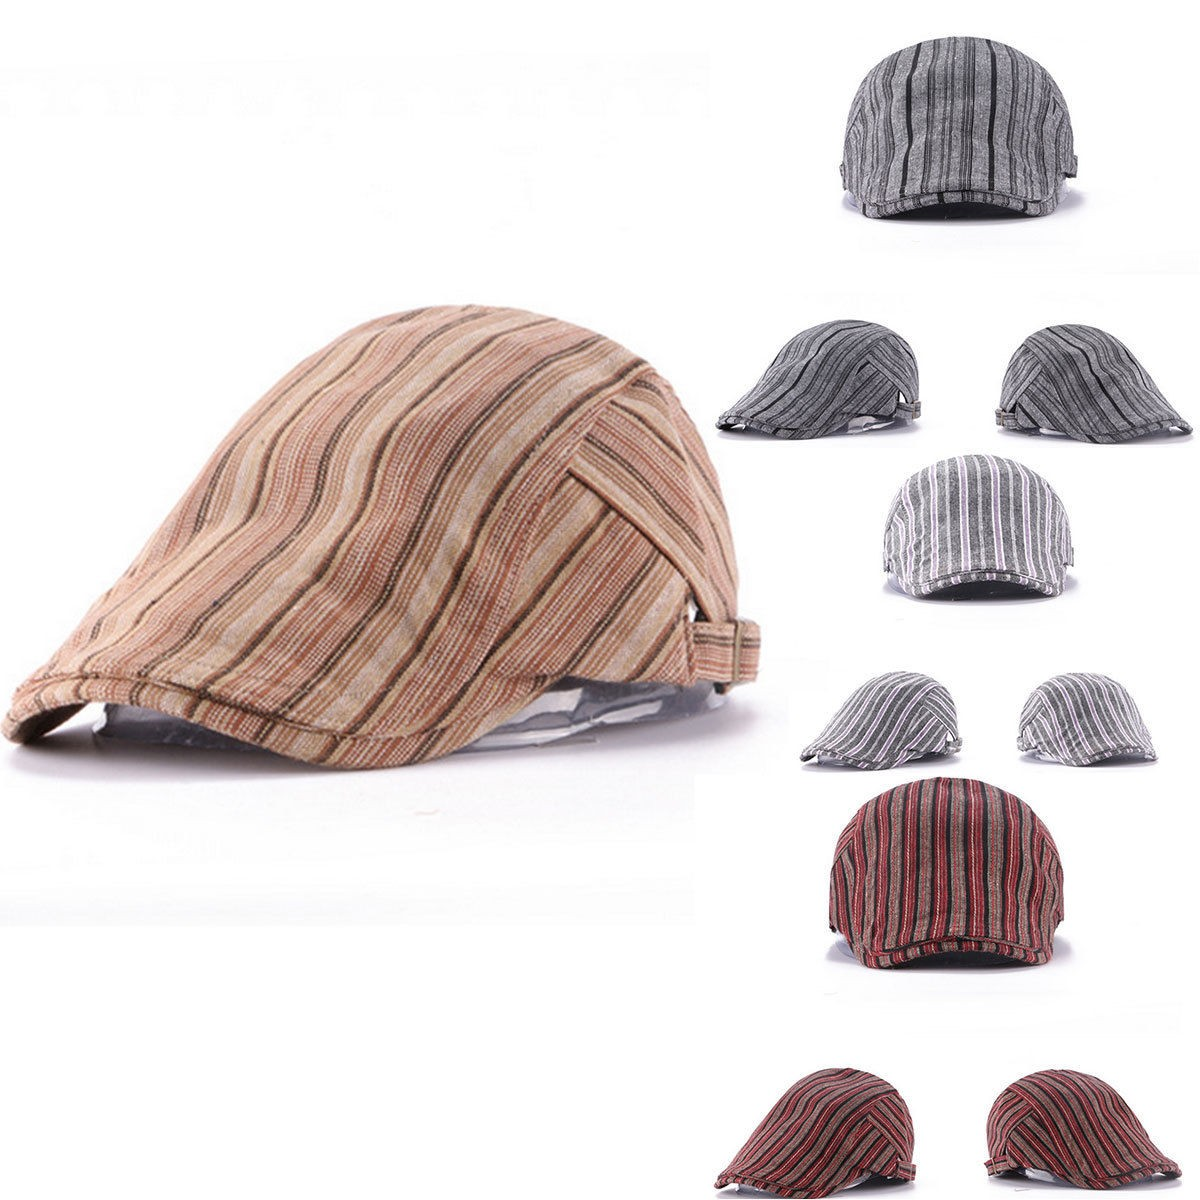 Unisex Men Women Stripe Cotton Blend Buckle Newsboy Beret Hat Duckbill Golf Cabbie Adjustable Cap men male wool blend newsboy beret cap grid blank thick flat cowboy cabbie hat